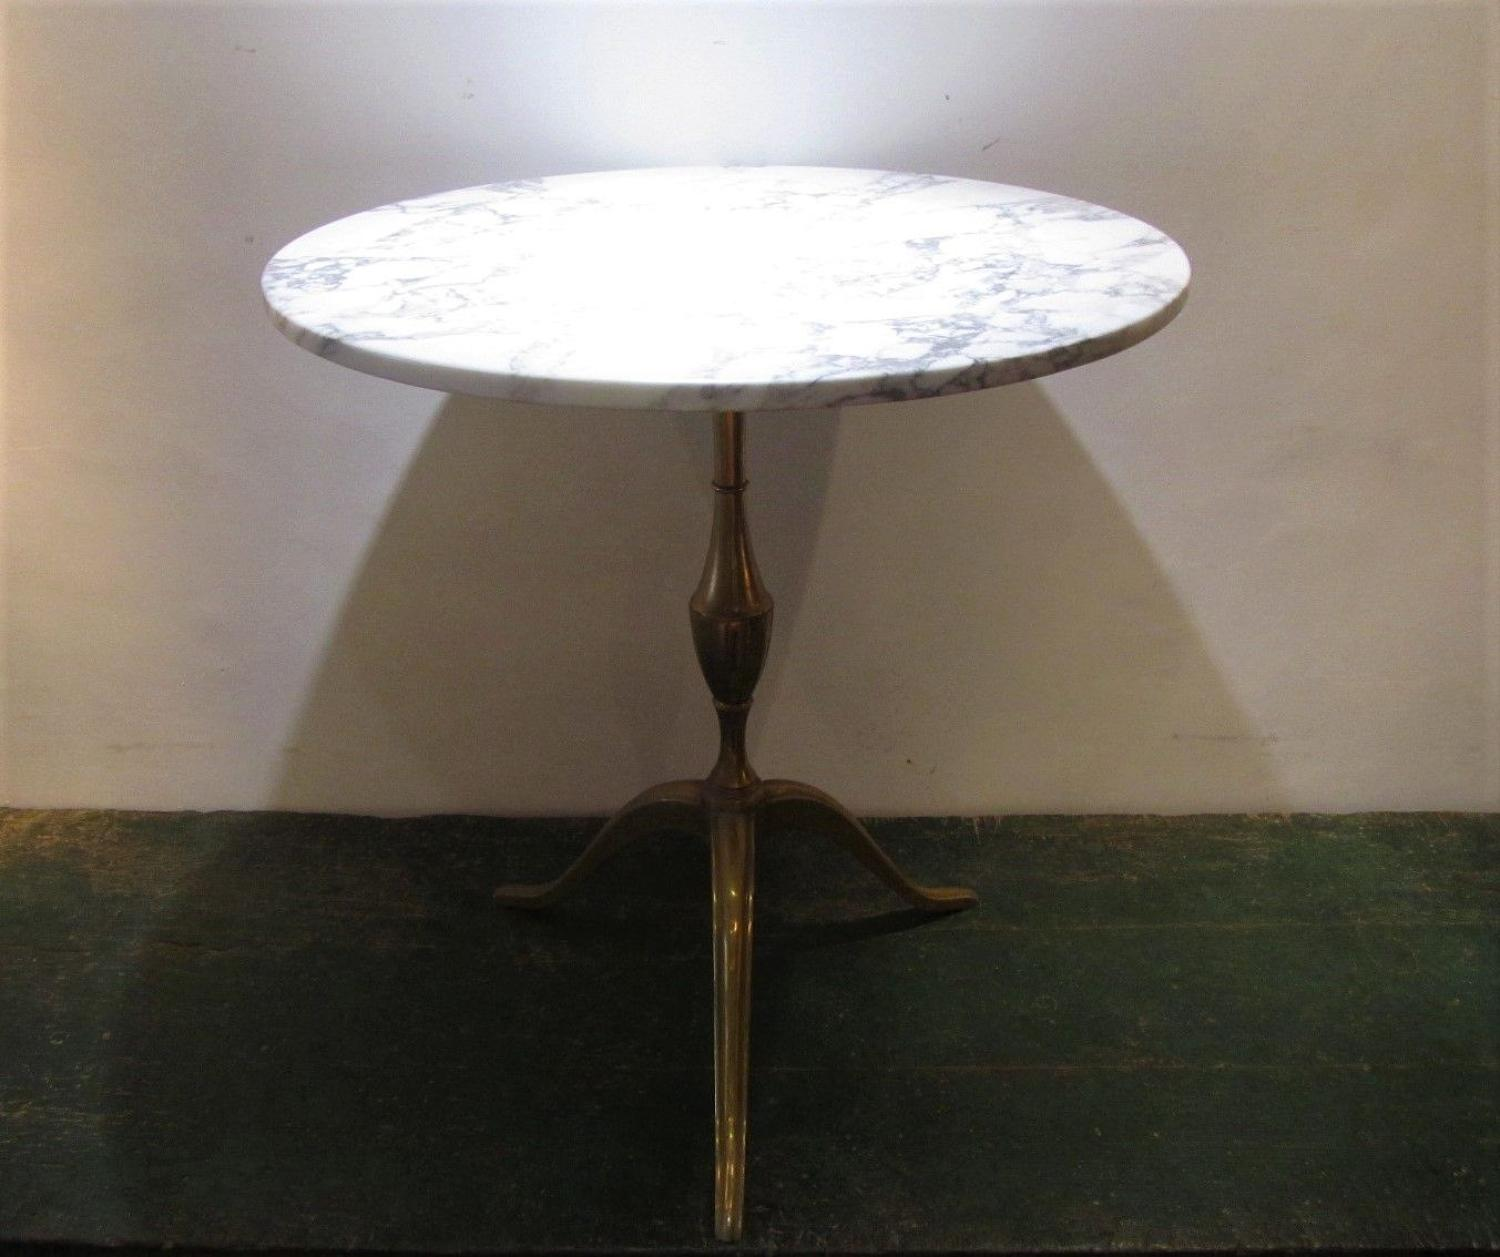 A brass and marble gueridon table